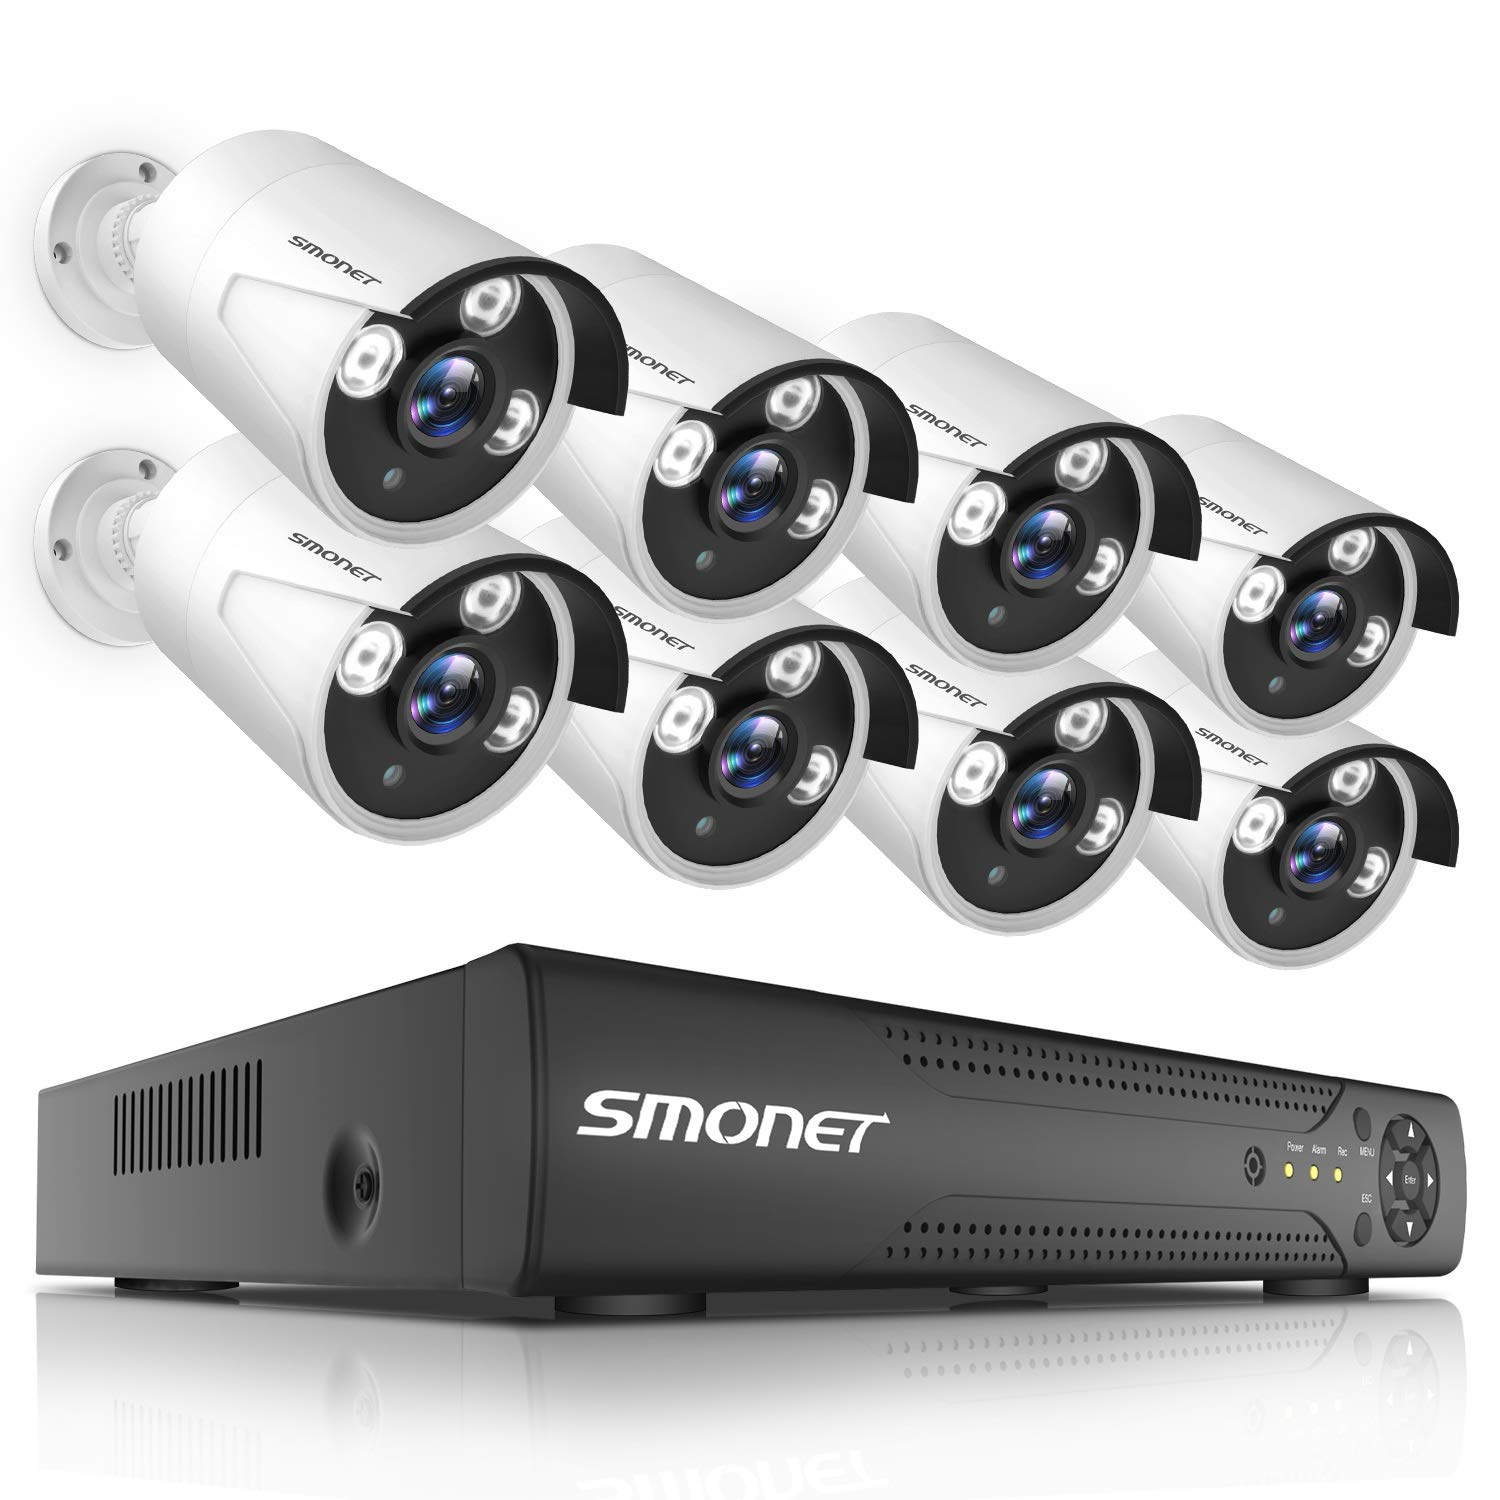 【2019 New】 Home Security Camera System,SMONET 8-Channel DVR Kits(1TB Hard Drive),8pcs Outdoor Surveillance Cameras,Video Security System with Free APP,Super Night Vision for DVR Camera System,P2P by SMONET